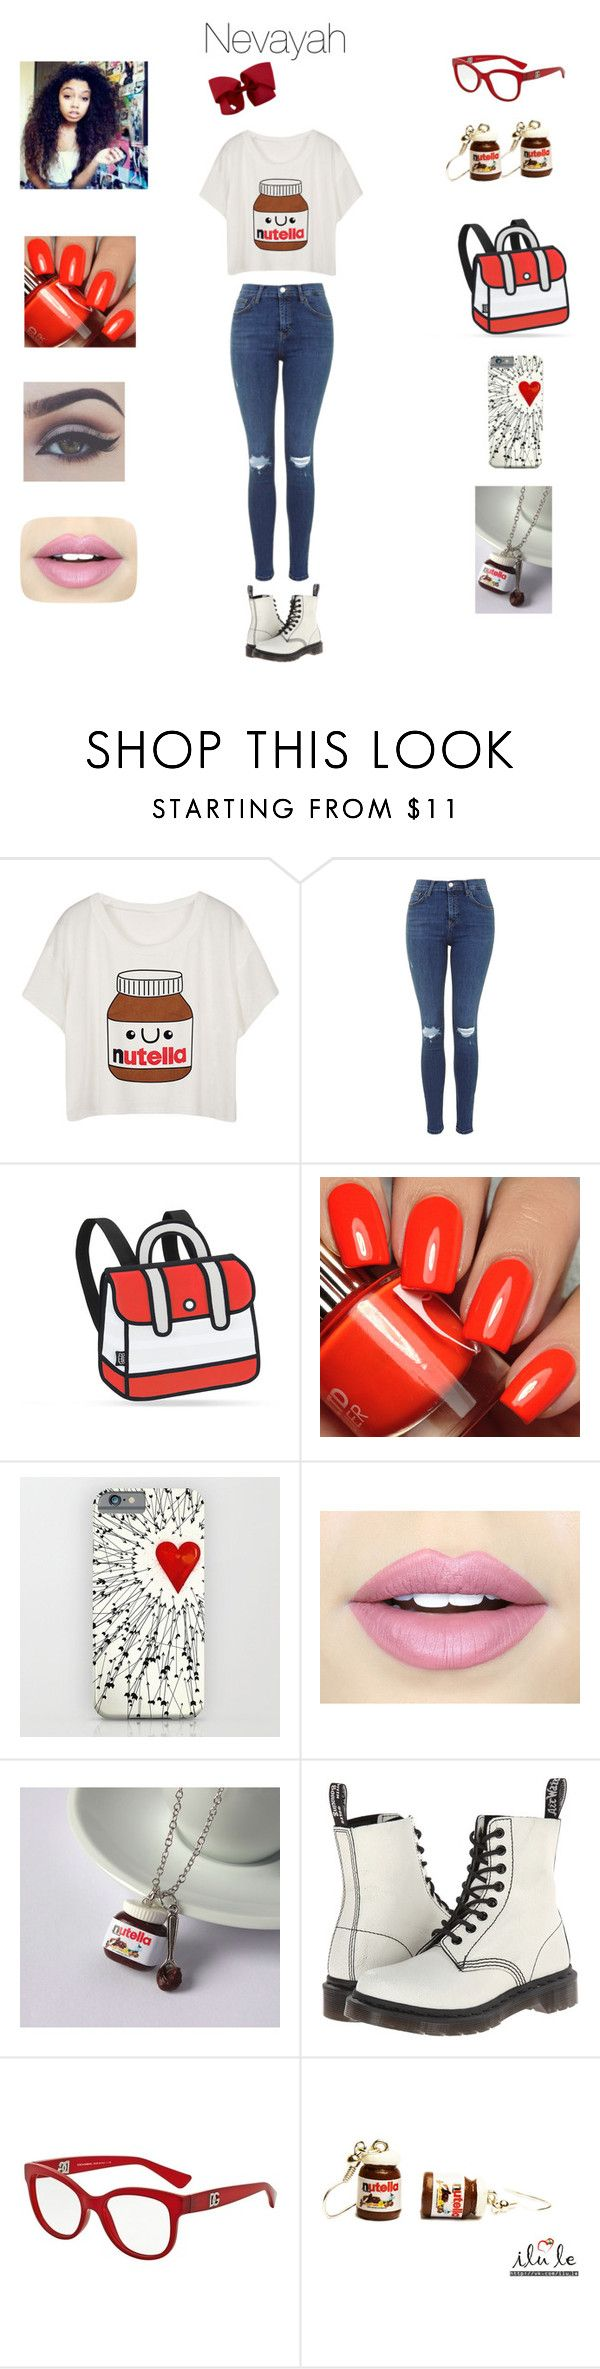 """Nevayah"" by neoncupcakes23 ❤ liked on Polyvore featuring JumpFromPaper, Fiebiger, Bellezza, Dr. Martens and Dolce&Gabbana"